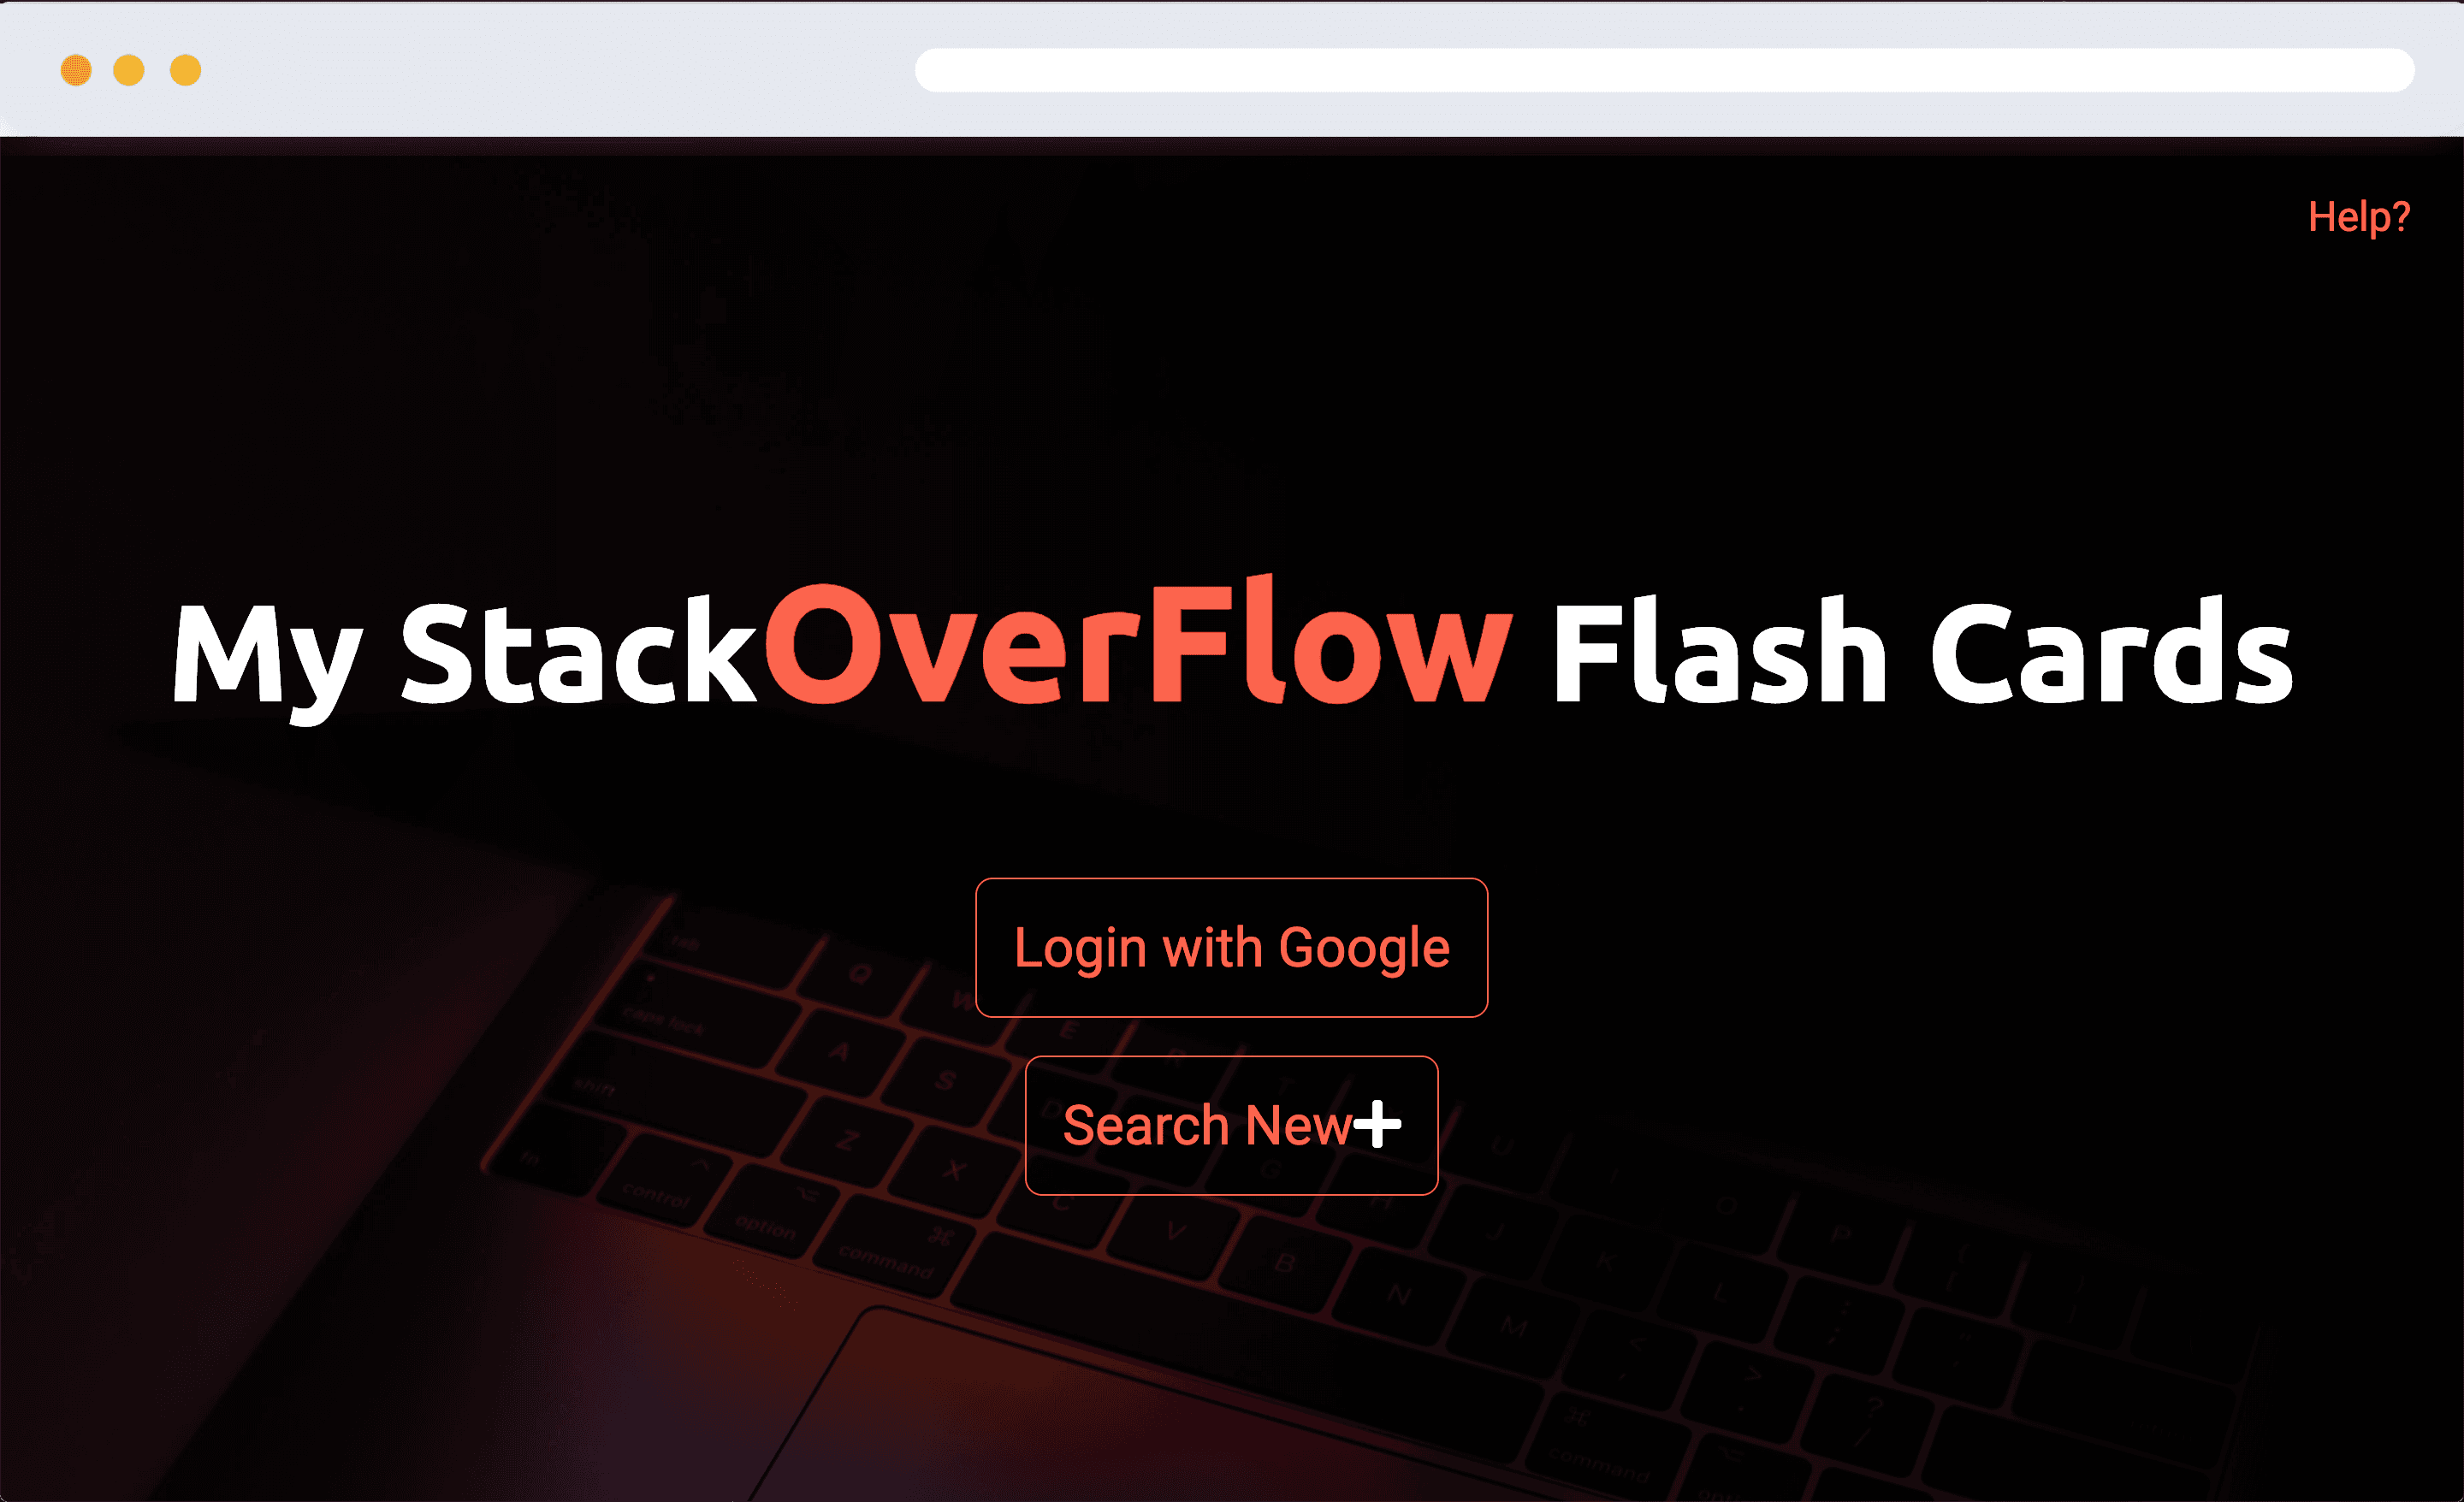 stackoverflow-flashcards image